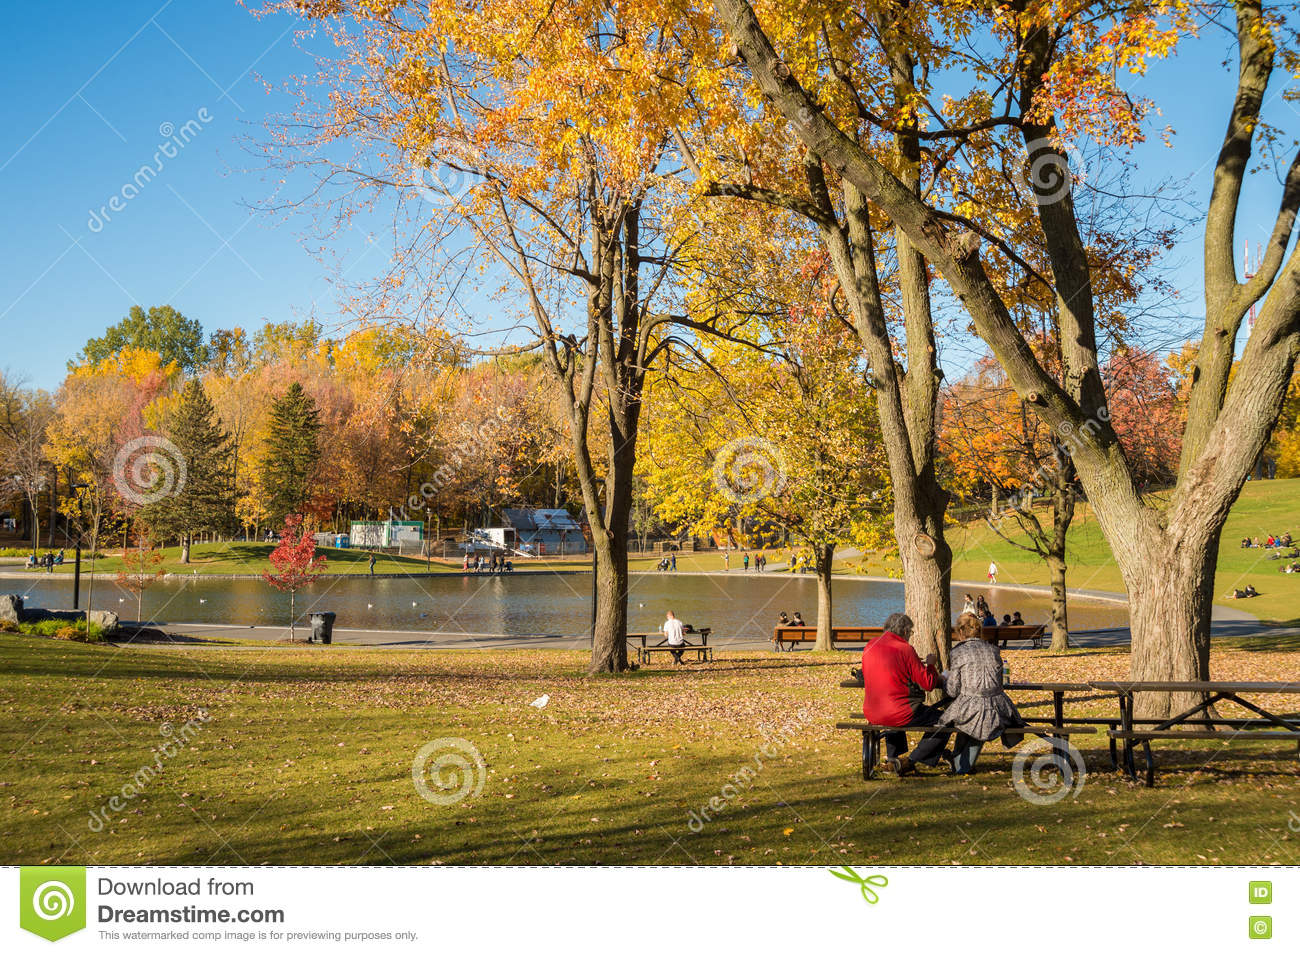 People enjoy a warm autumn day in Montreal